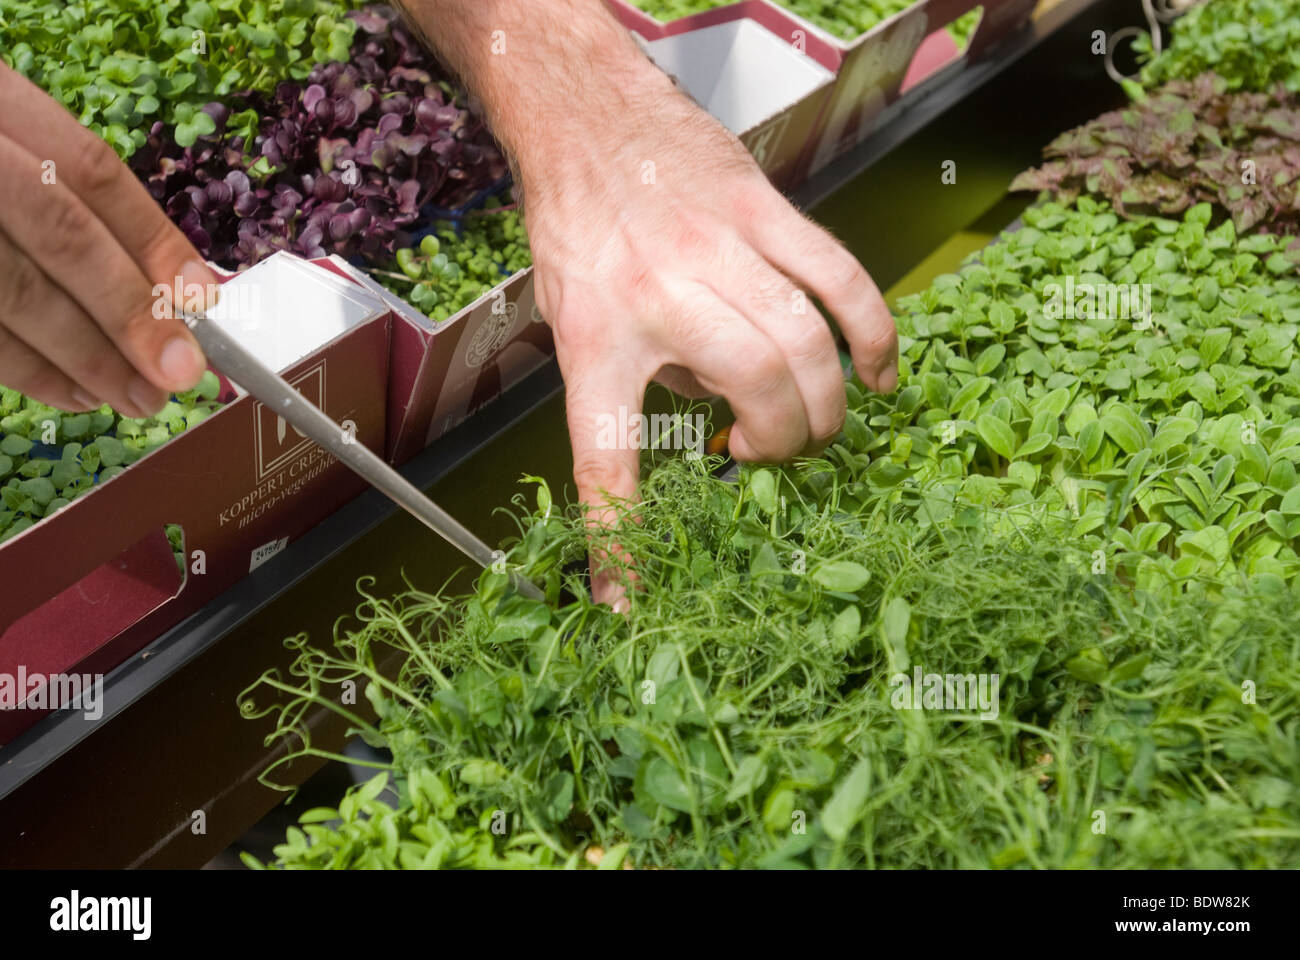 Micro-vegetables farmed in greenhouses are displayed at an exhibit in New York - Stock Image